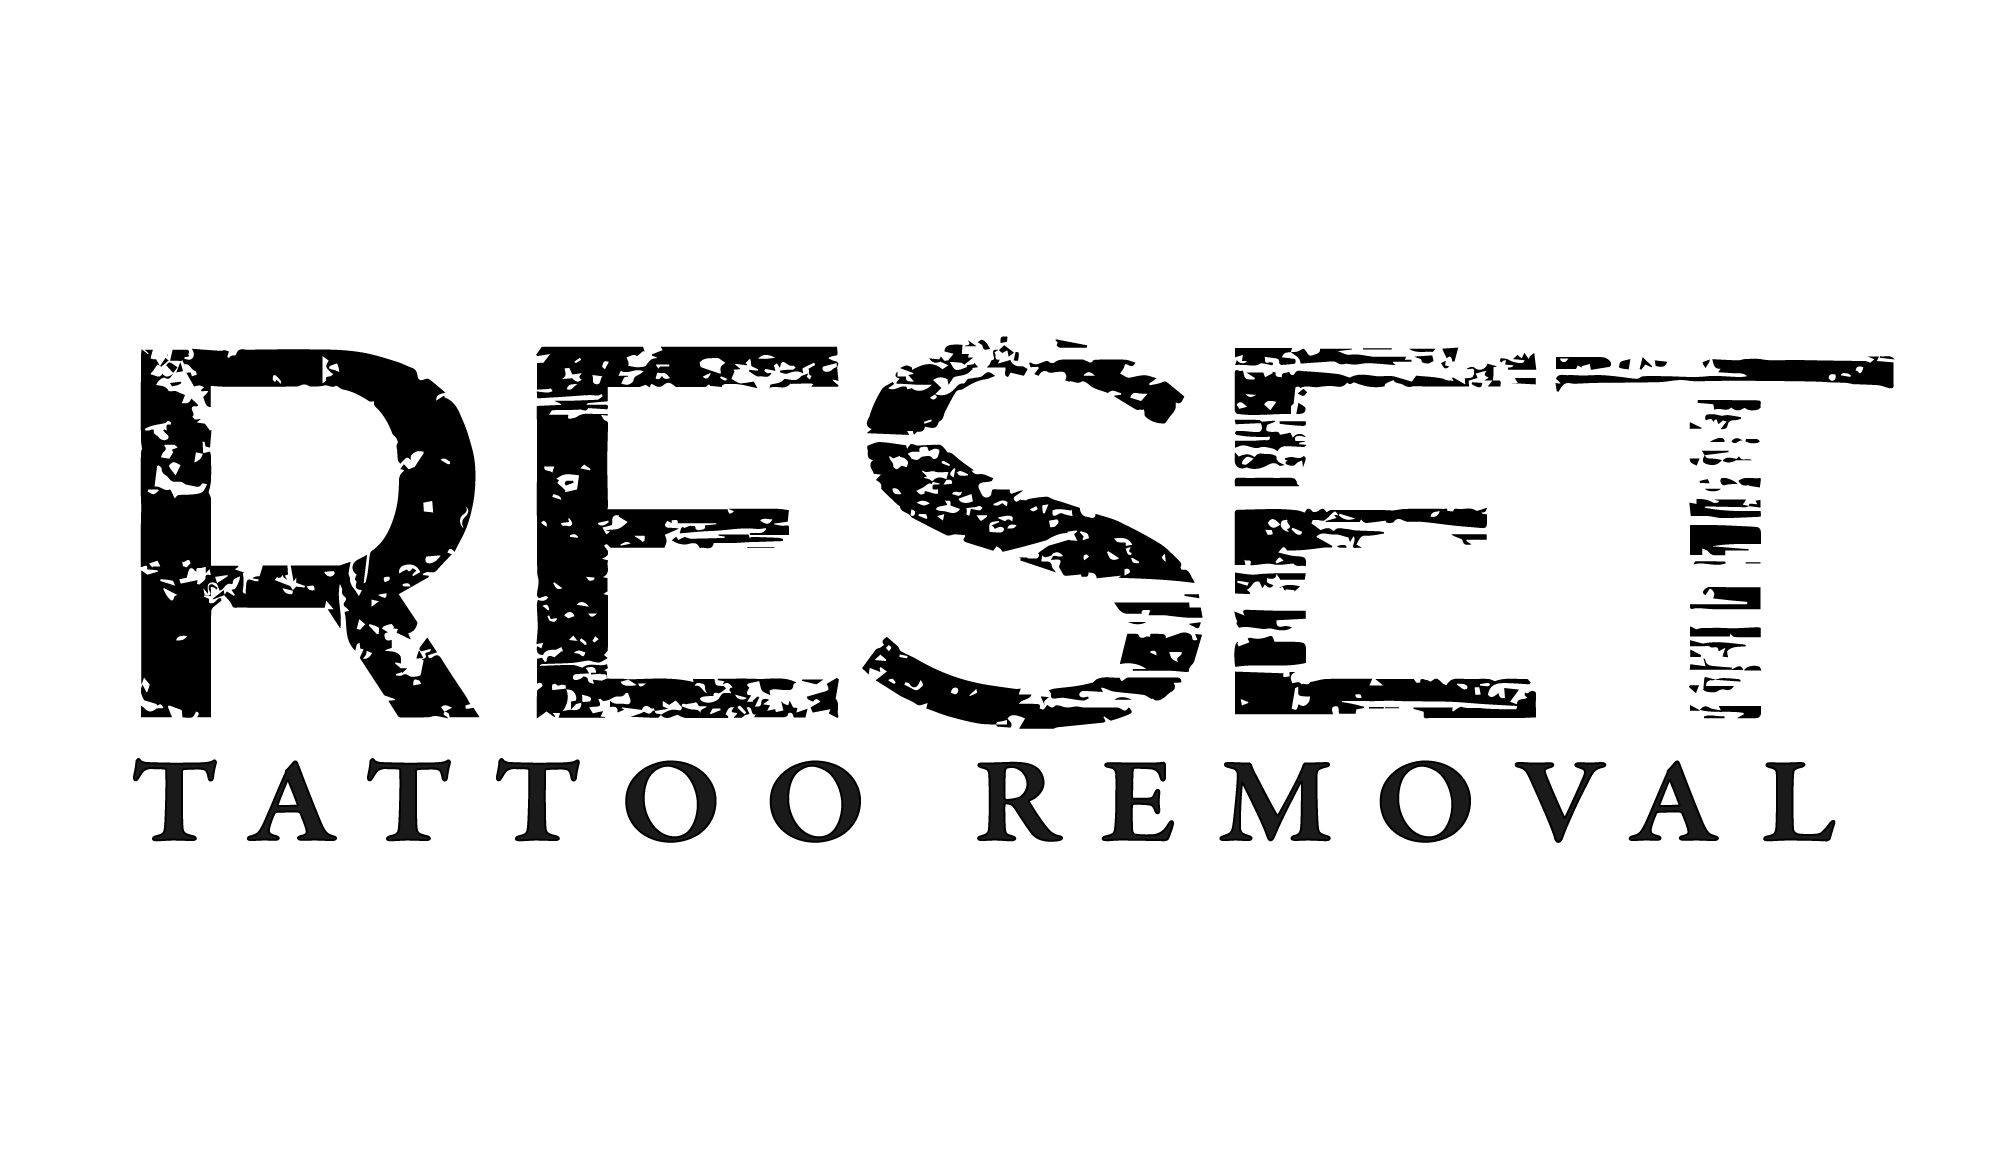 Reset Tattoo Removal Logo-01